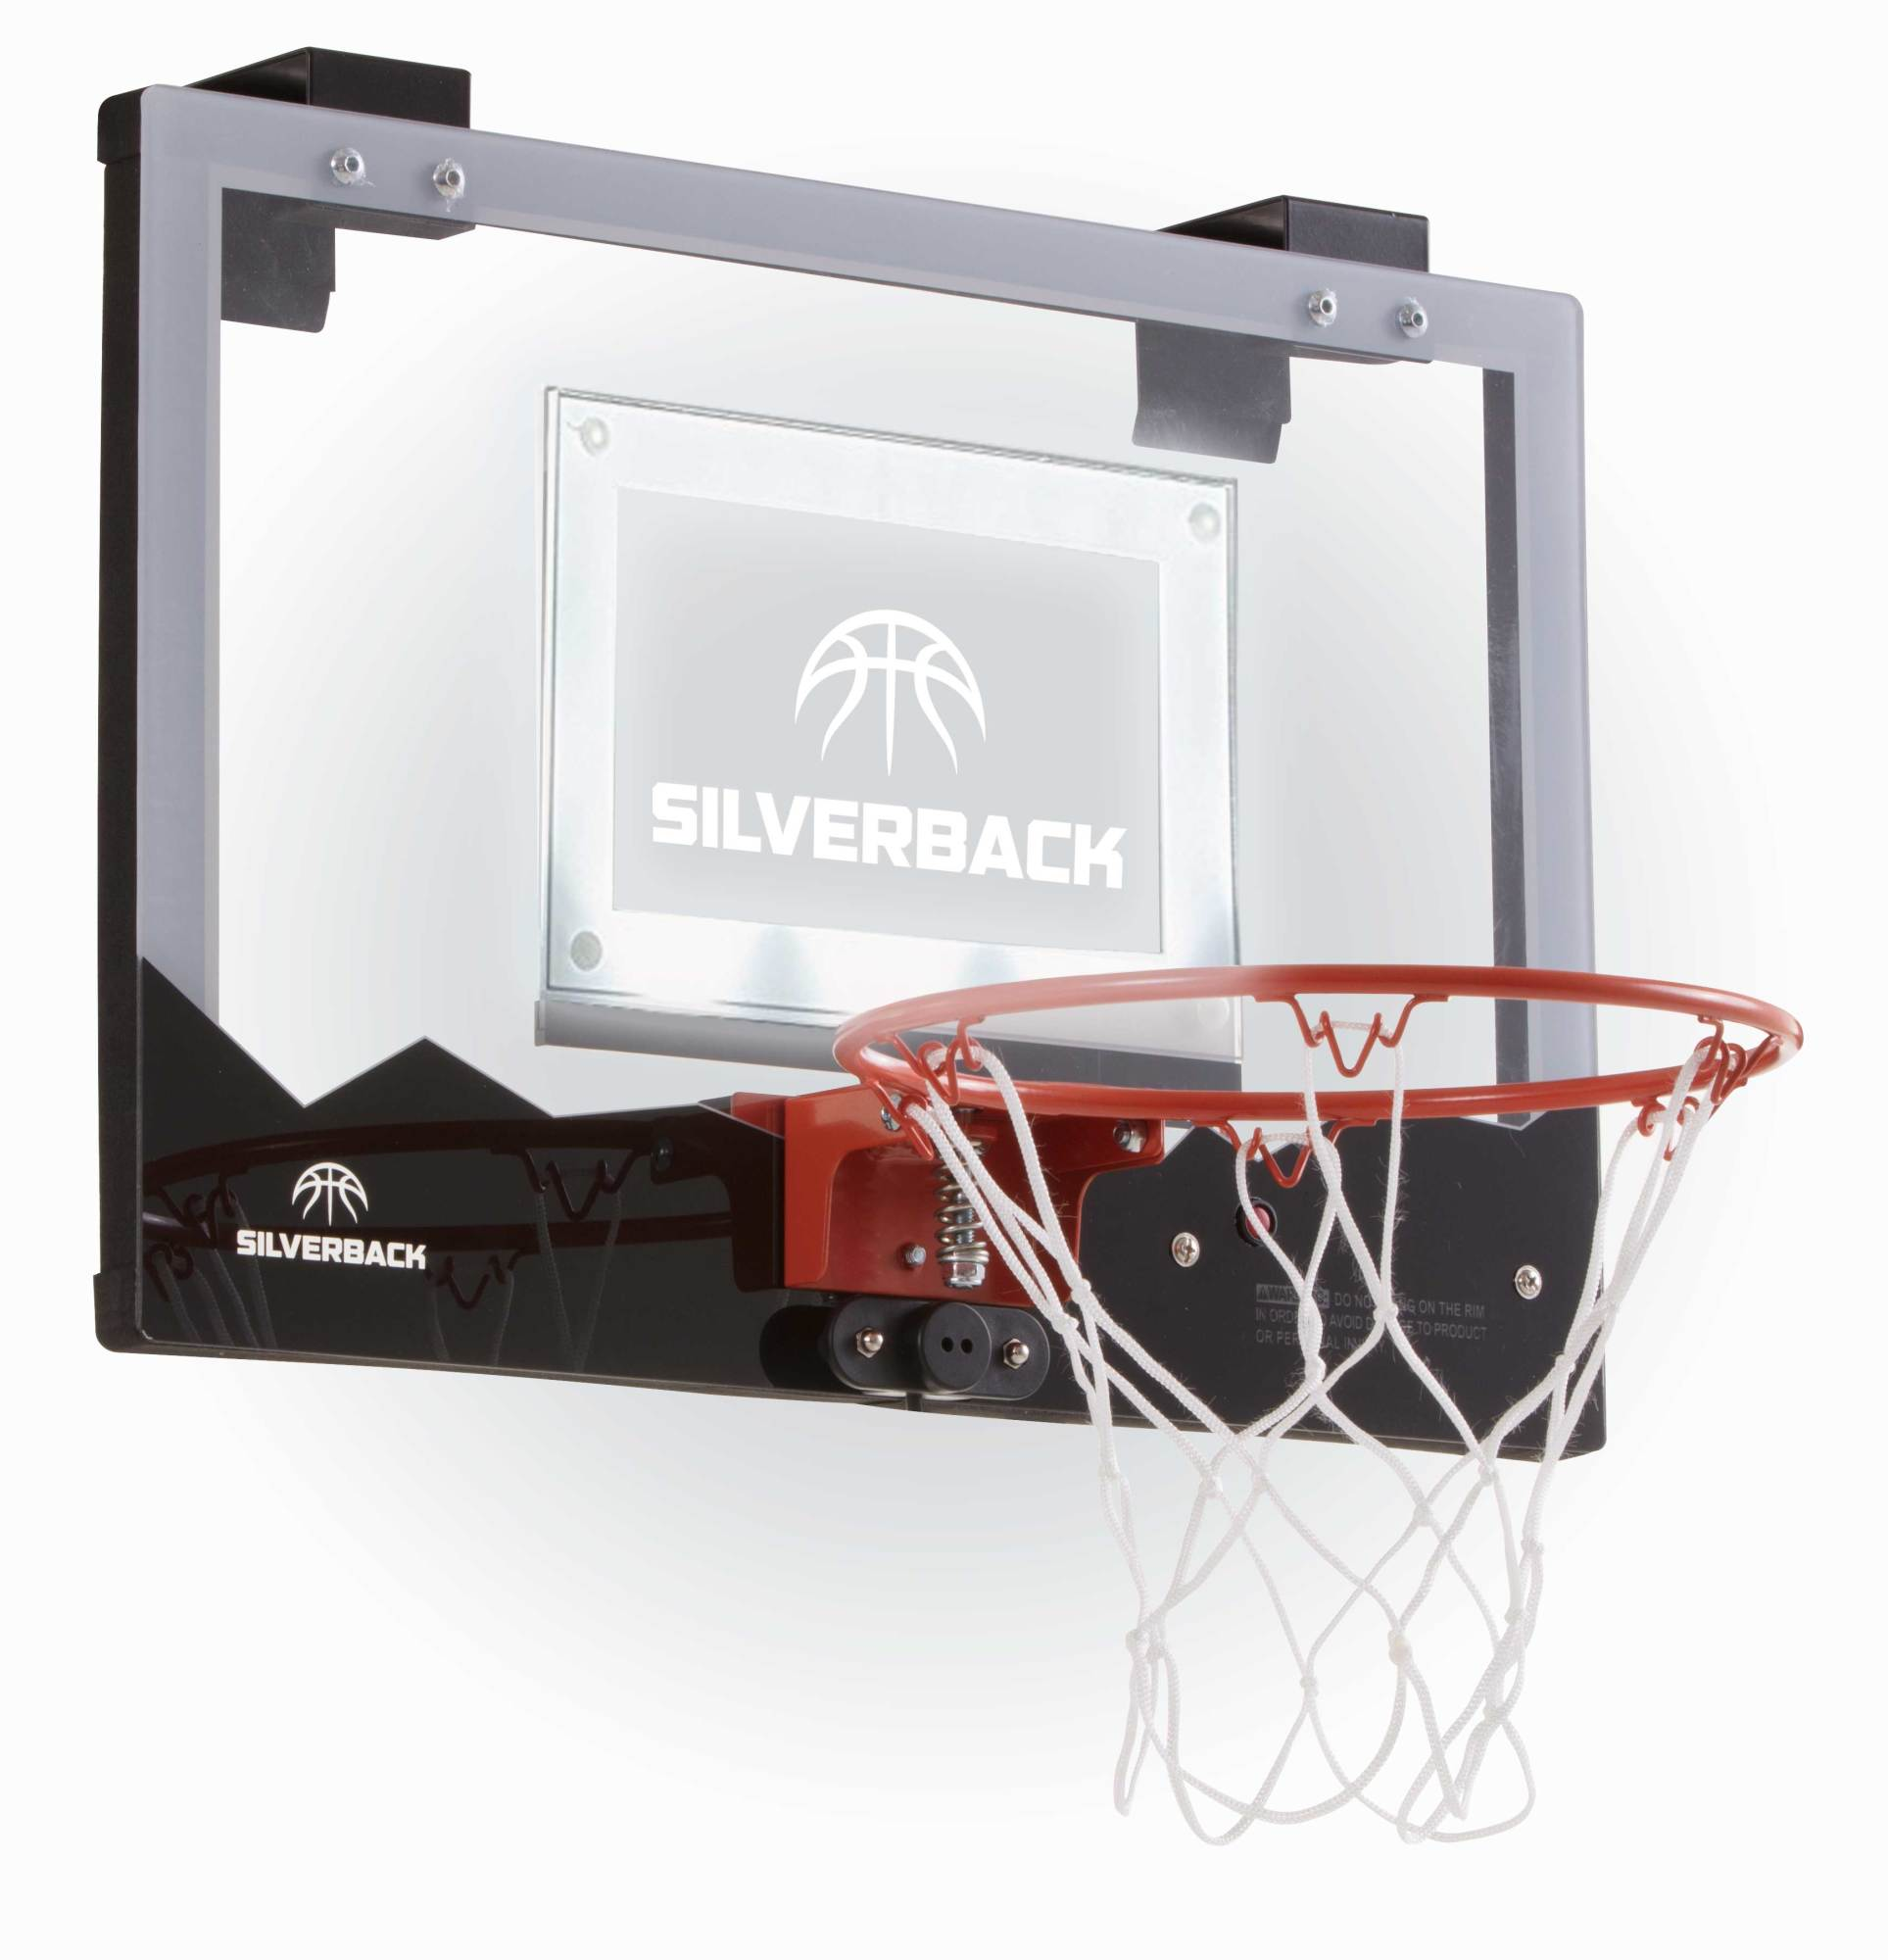 "Silverback LED Light-Up Over the Door Mini Basketball Hoop - 18"" - Includes Mini Basketball and Air Pump"